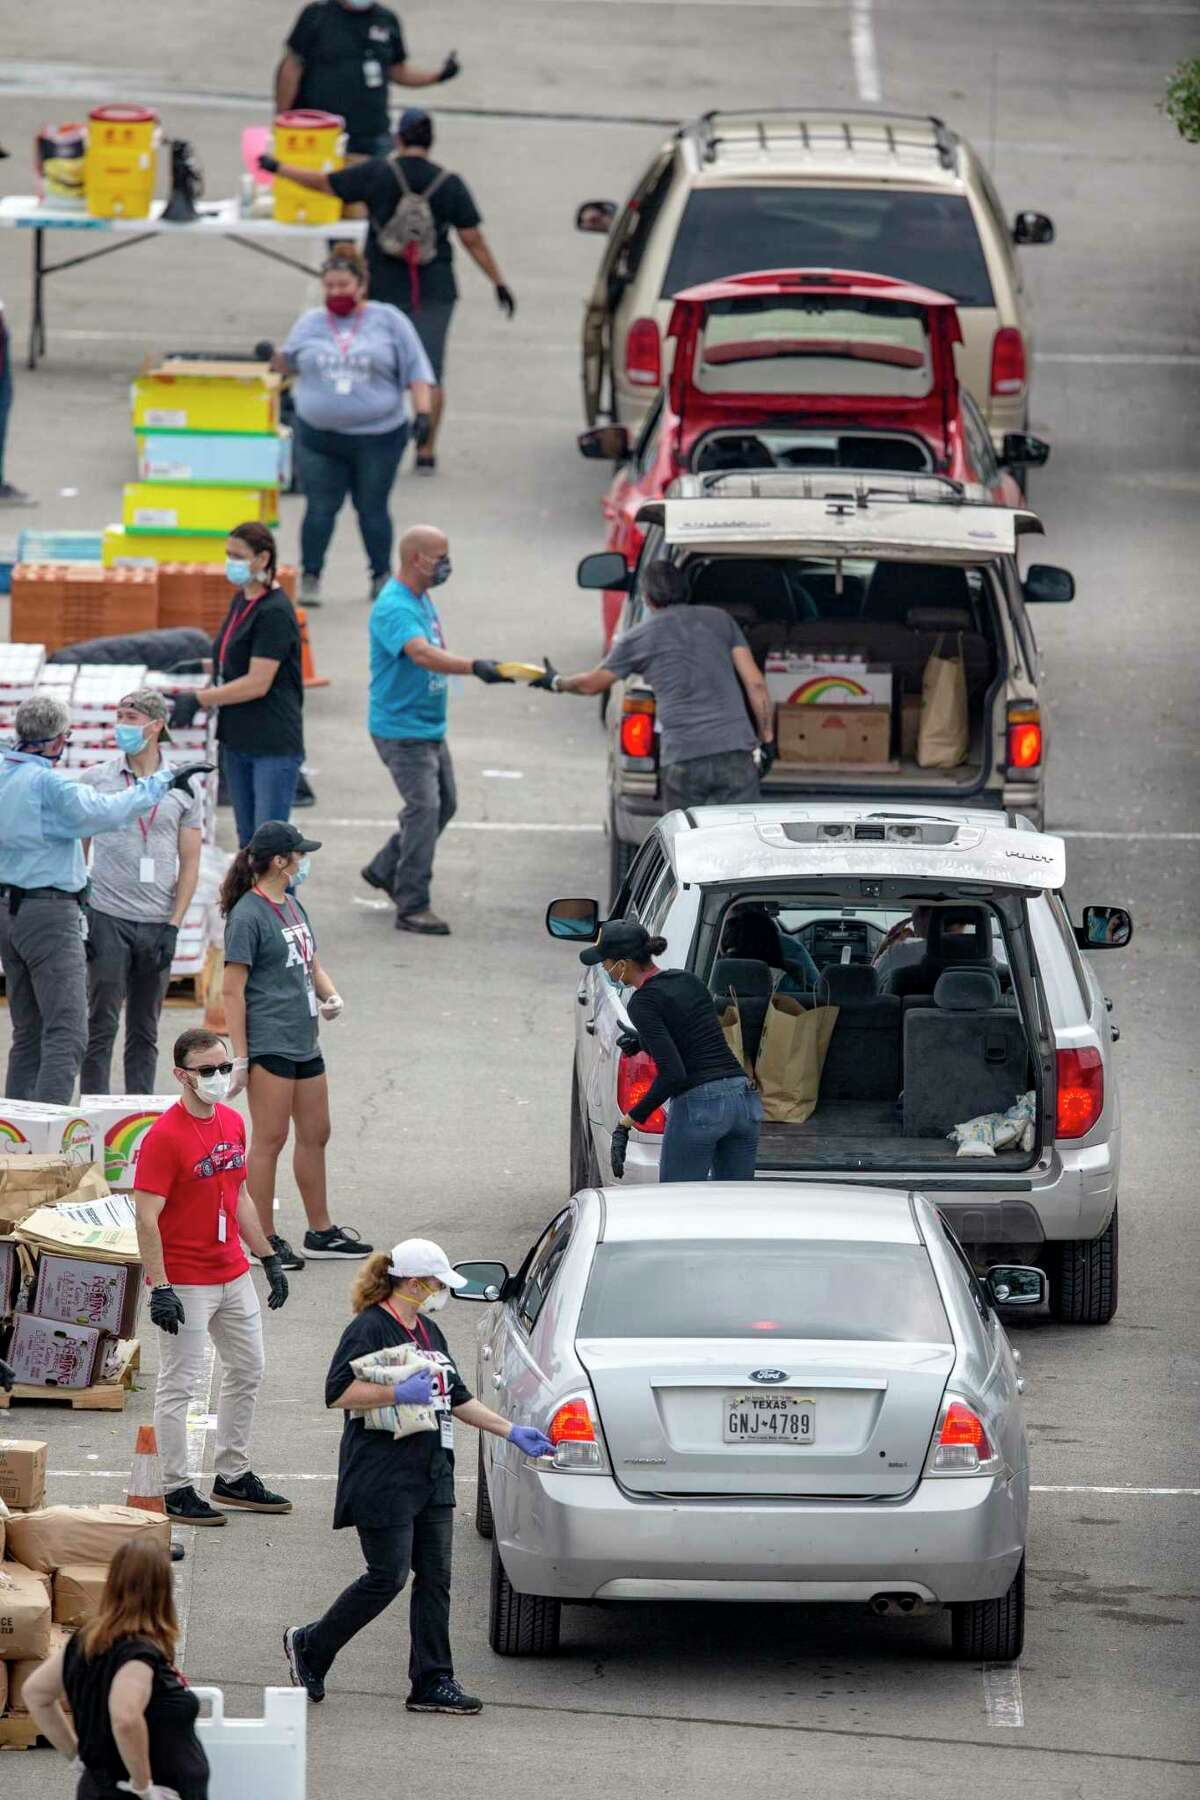 Volunteers distribute food Tuesday, April 7, 2020, in the Toyota Field parking lot for people needing assistance from the Food Bank. Demand for food aid has skyrocketed since the the start of the COVID-19 coronavirus pandemic.